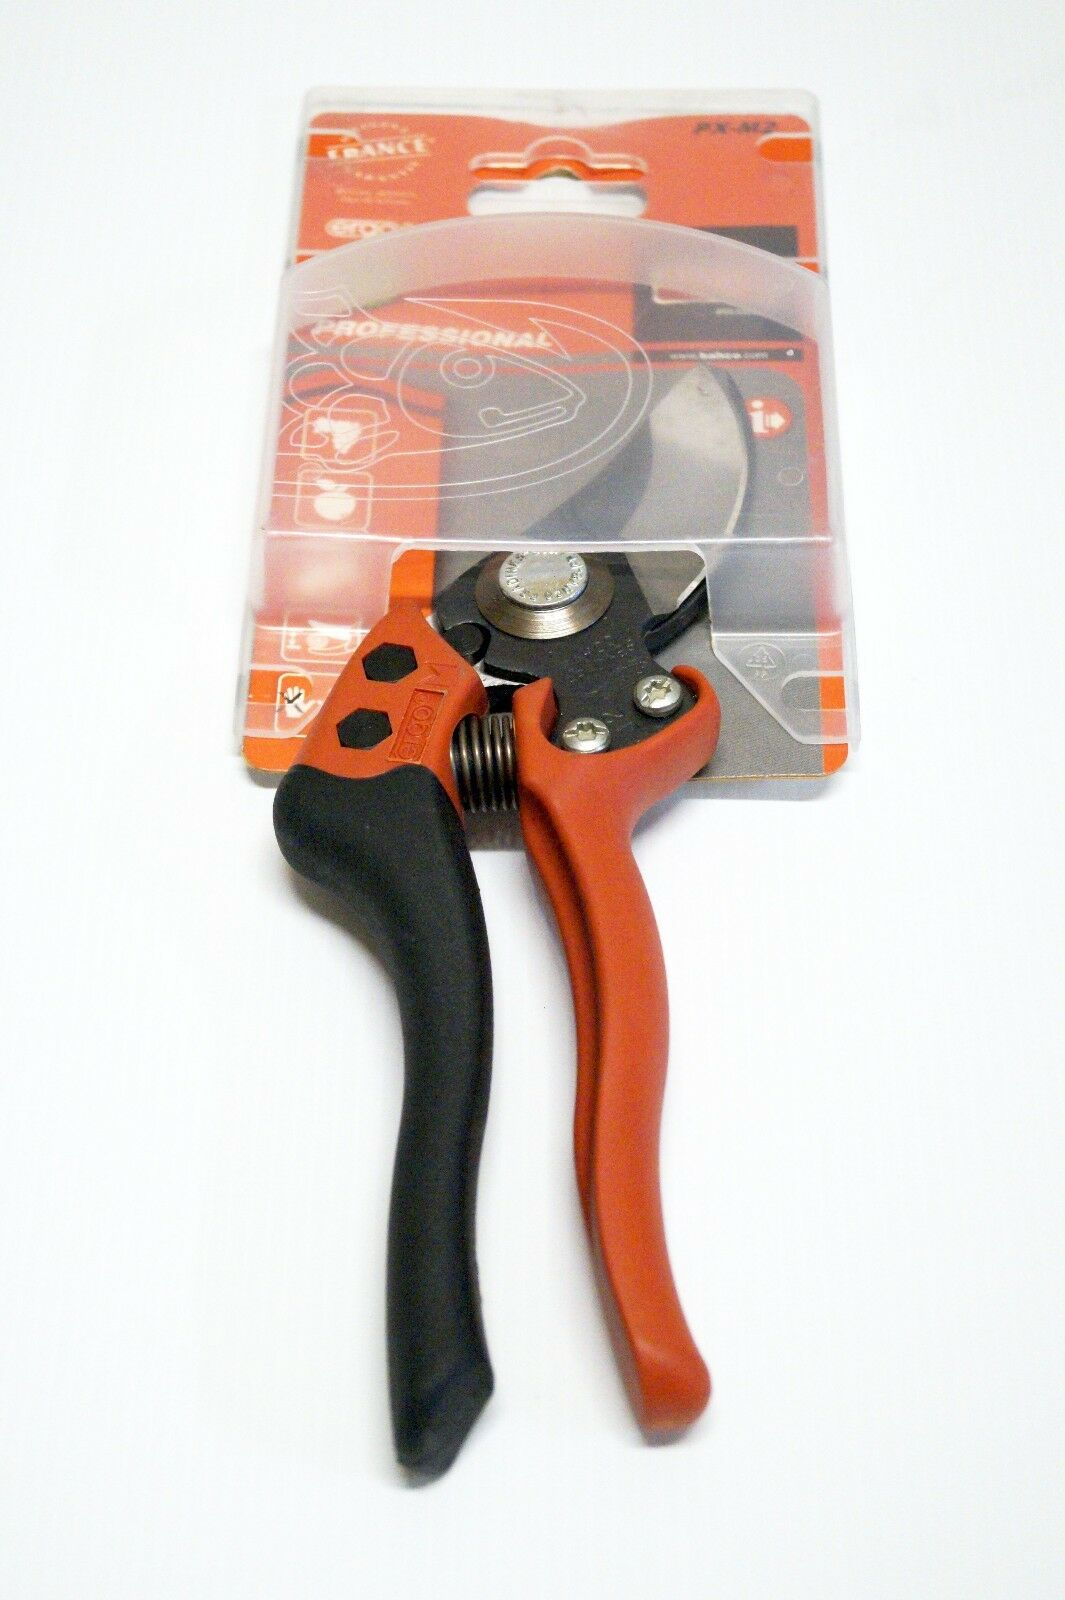 BAHCO PRADINES Professional Secateurs Garden Pruner Ergo PX-M2 Made in in in France 50aa06